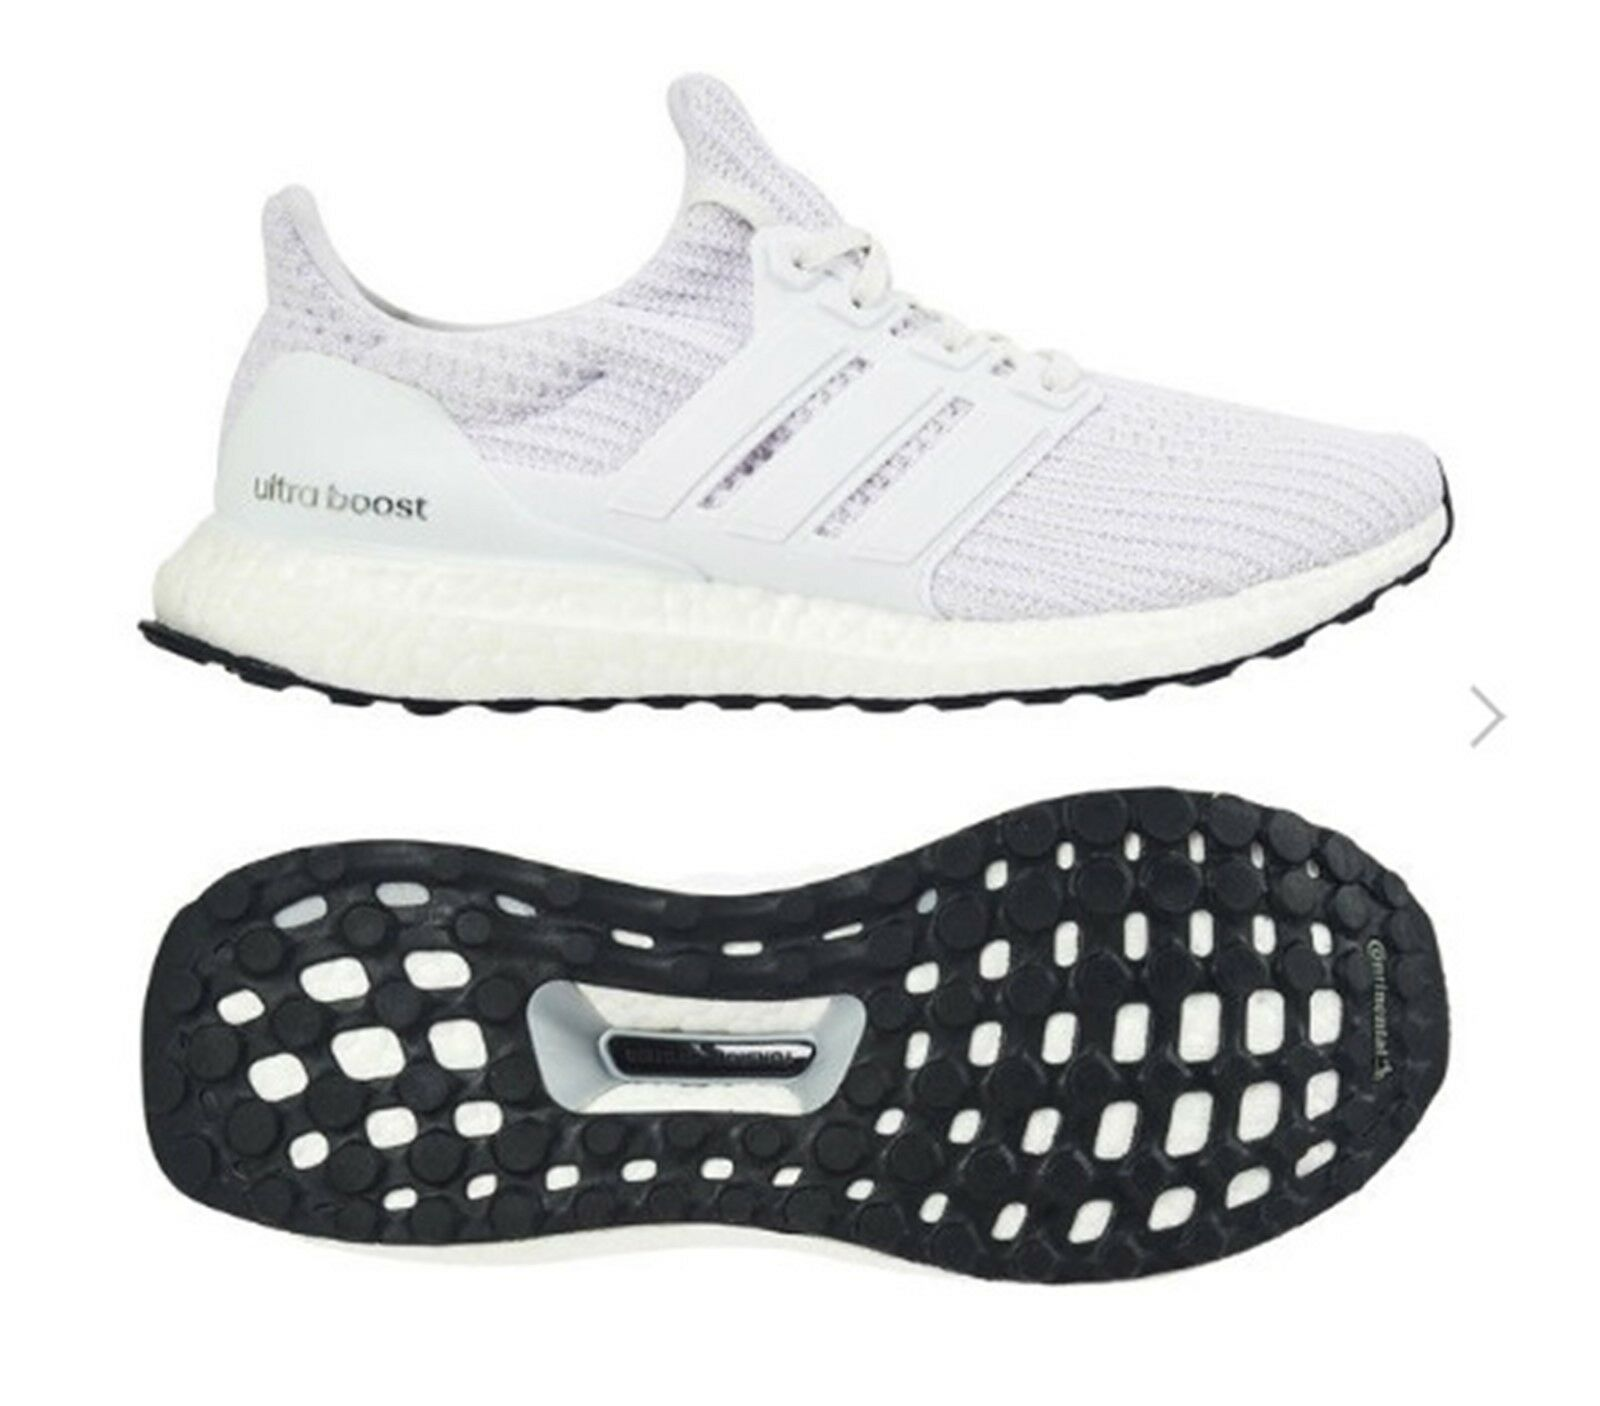 Adidas Men ULTRABoost 4.0 Training shoes Running White Sneakers shoes  BB6168  convenient